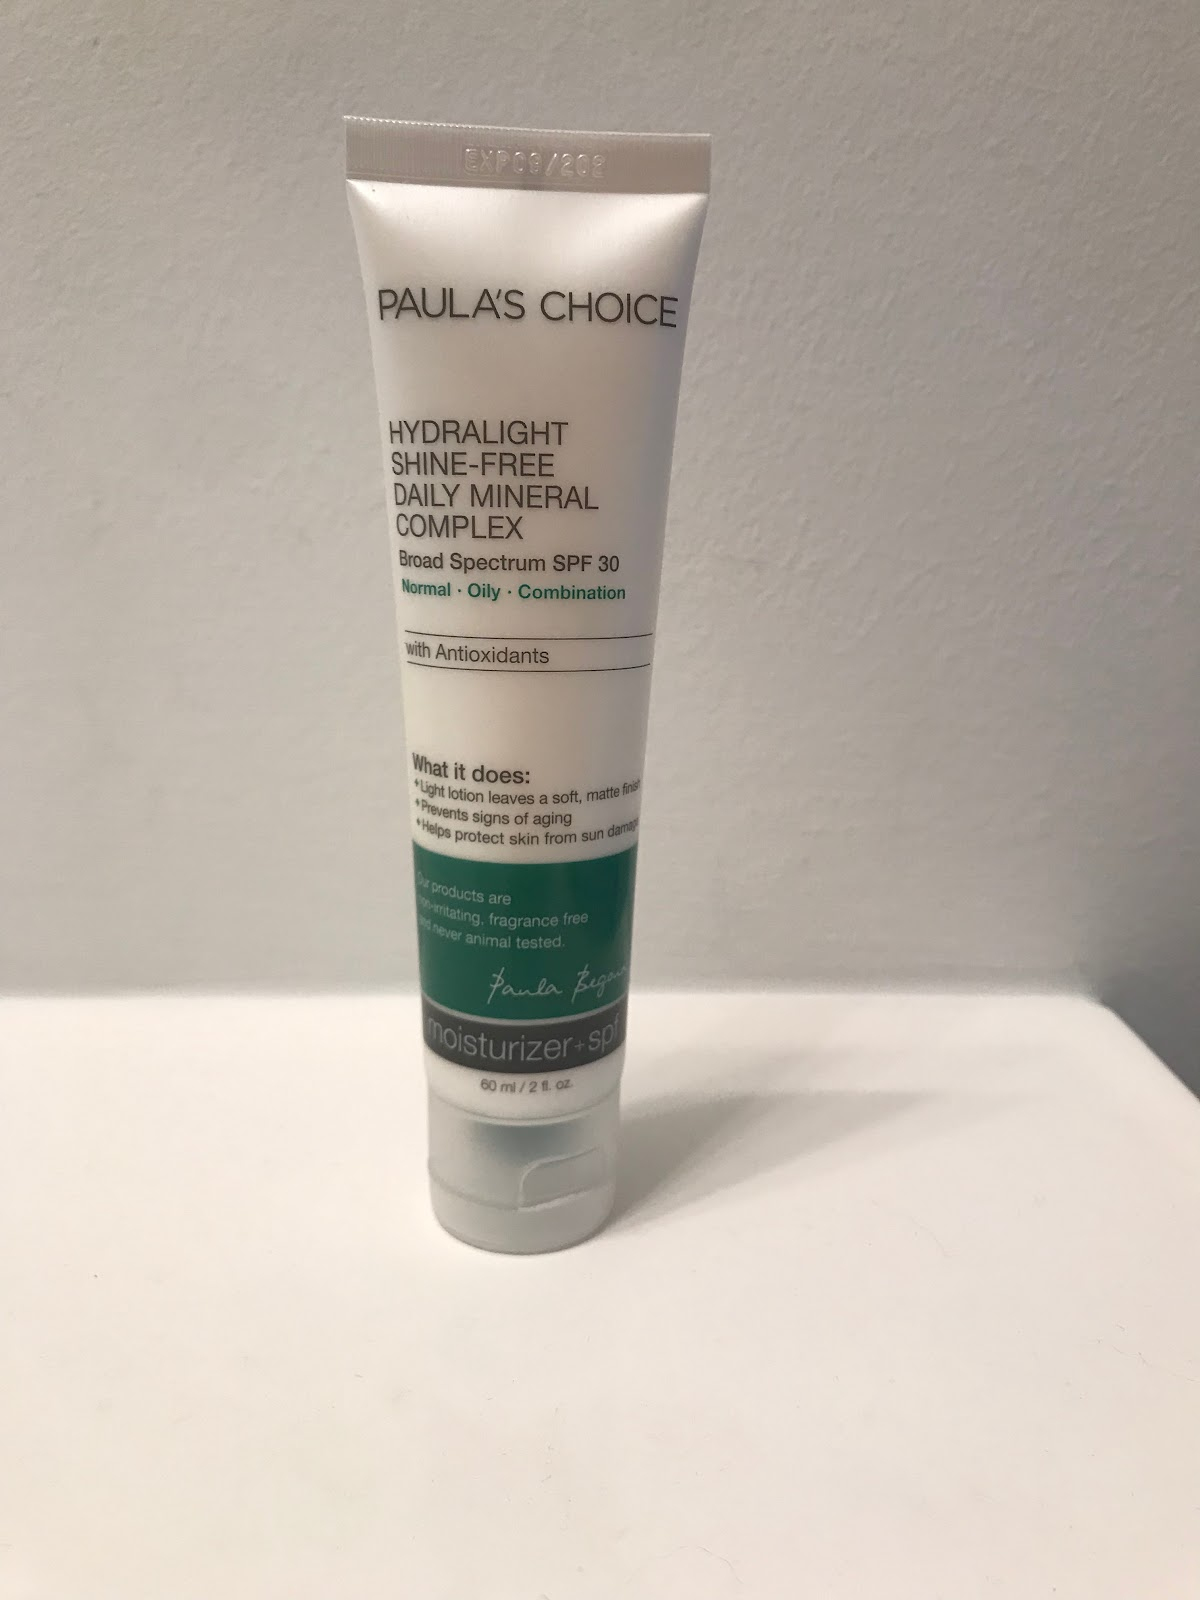 Paula's Choice HYDRALIGHT Shine-Free Daily Mineral Complex